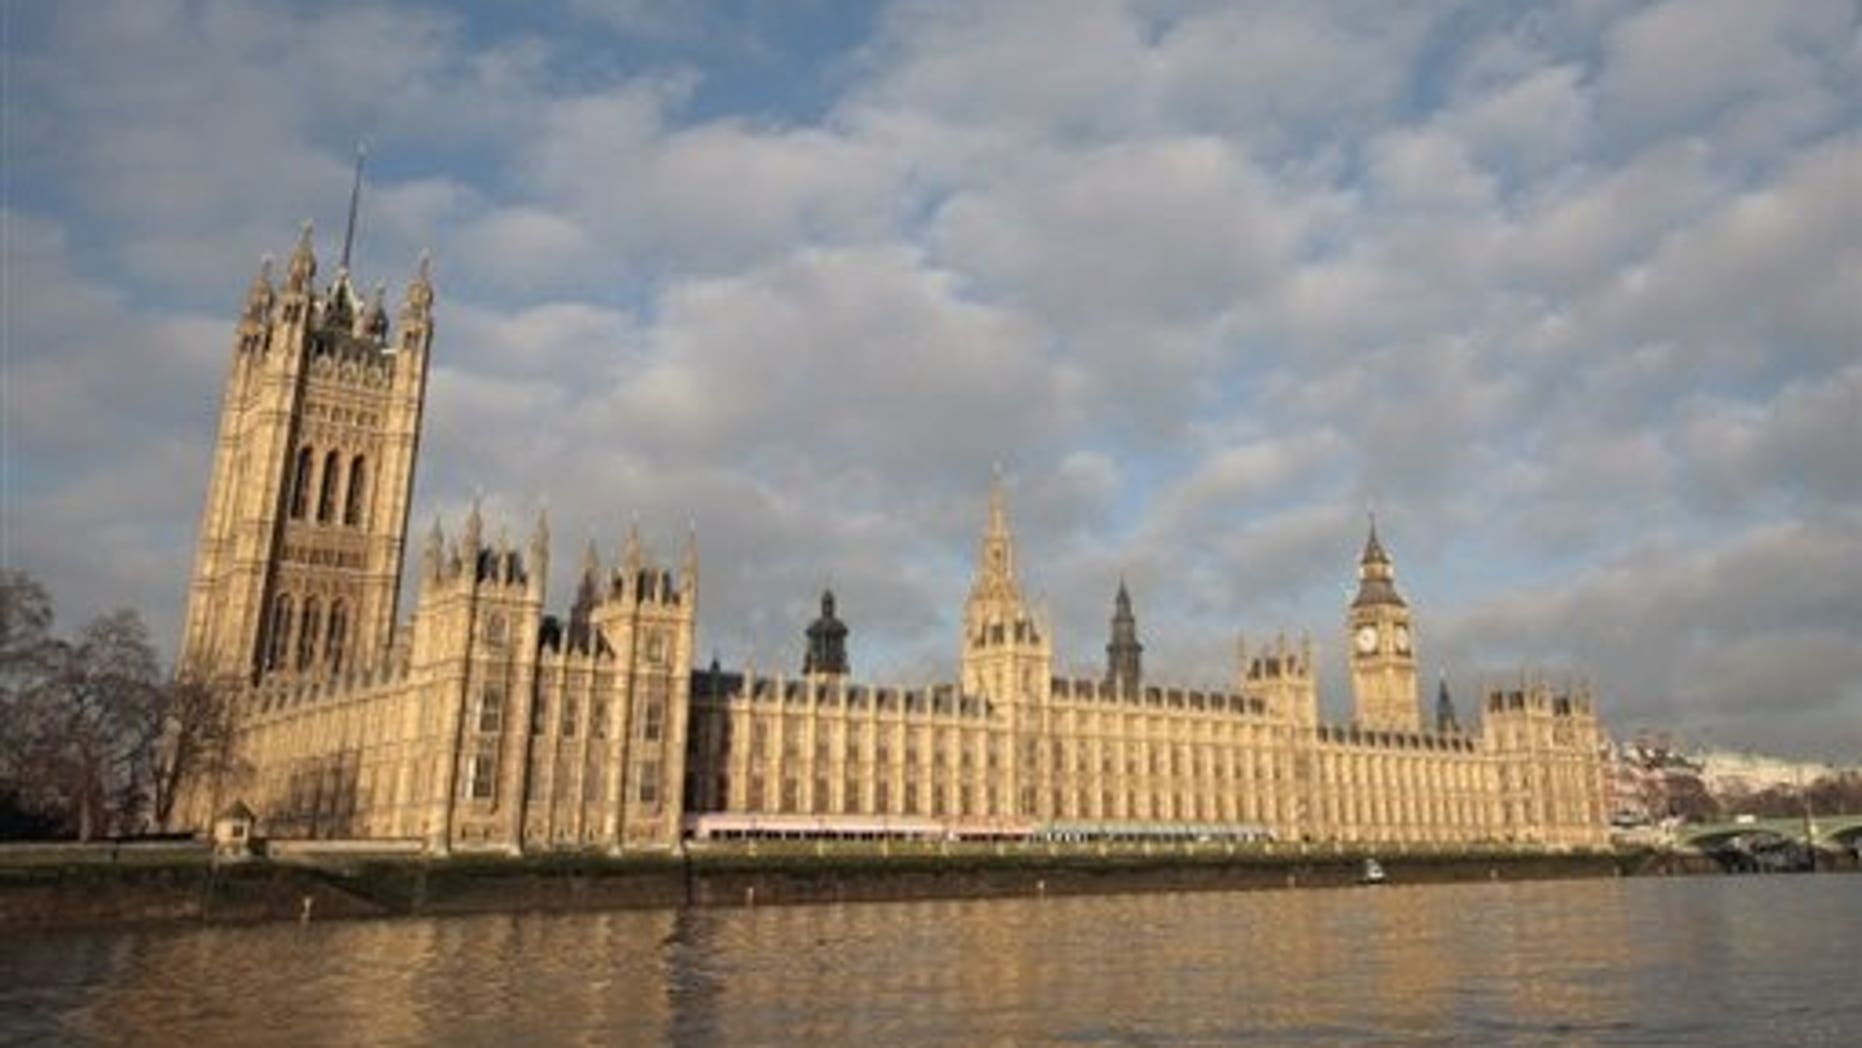 The British Houses of Parliament are pictured in central London on January 26, 2009. The parliament is to spend up to ??100,000 ($150,000) on refurbishing two toilets used by members of the House of Lords and guests, it has emerged.